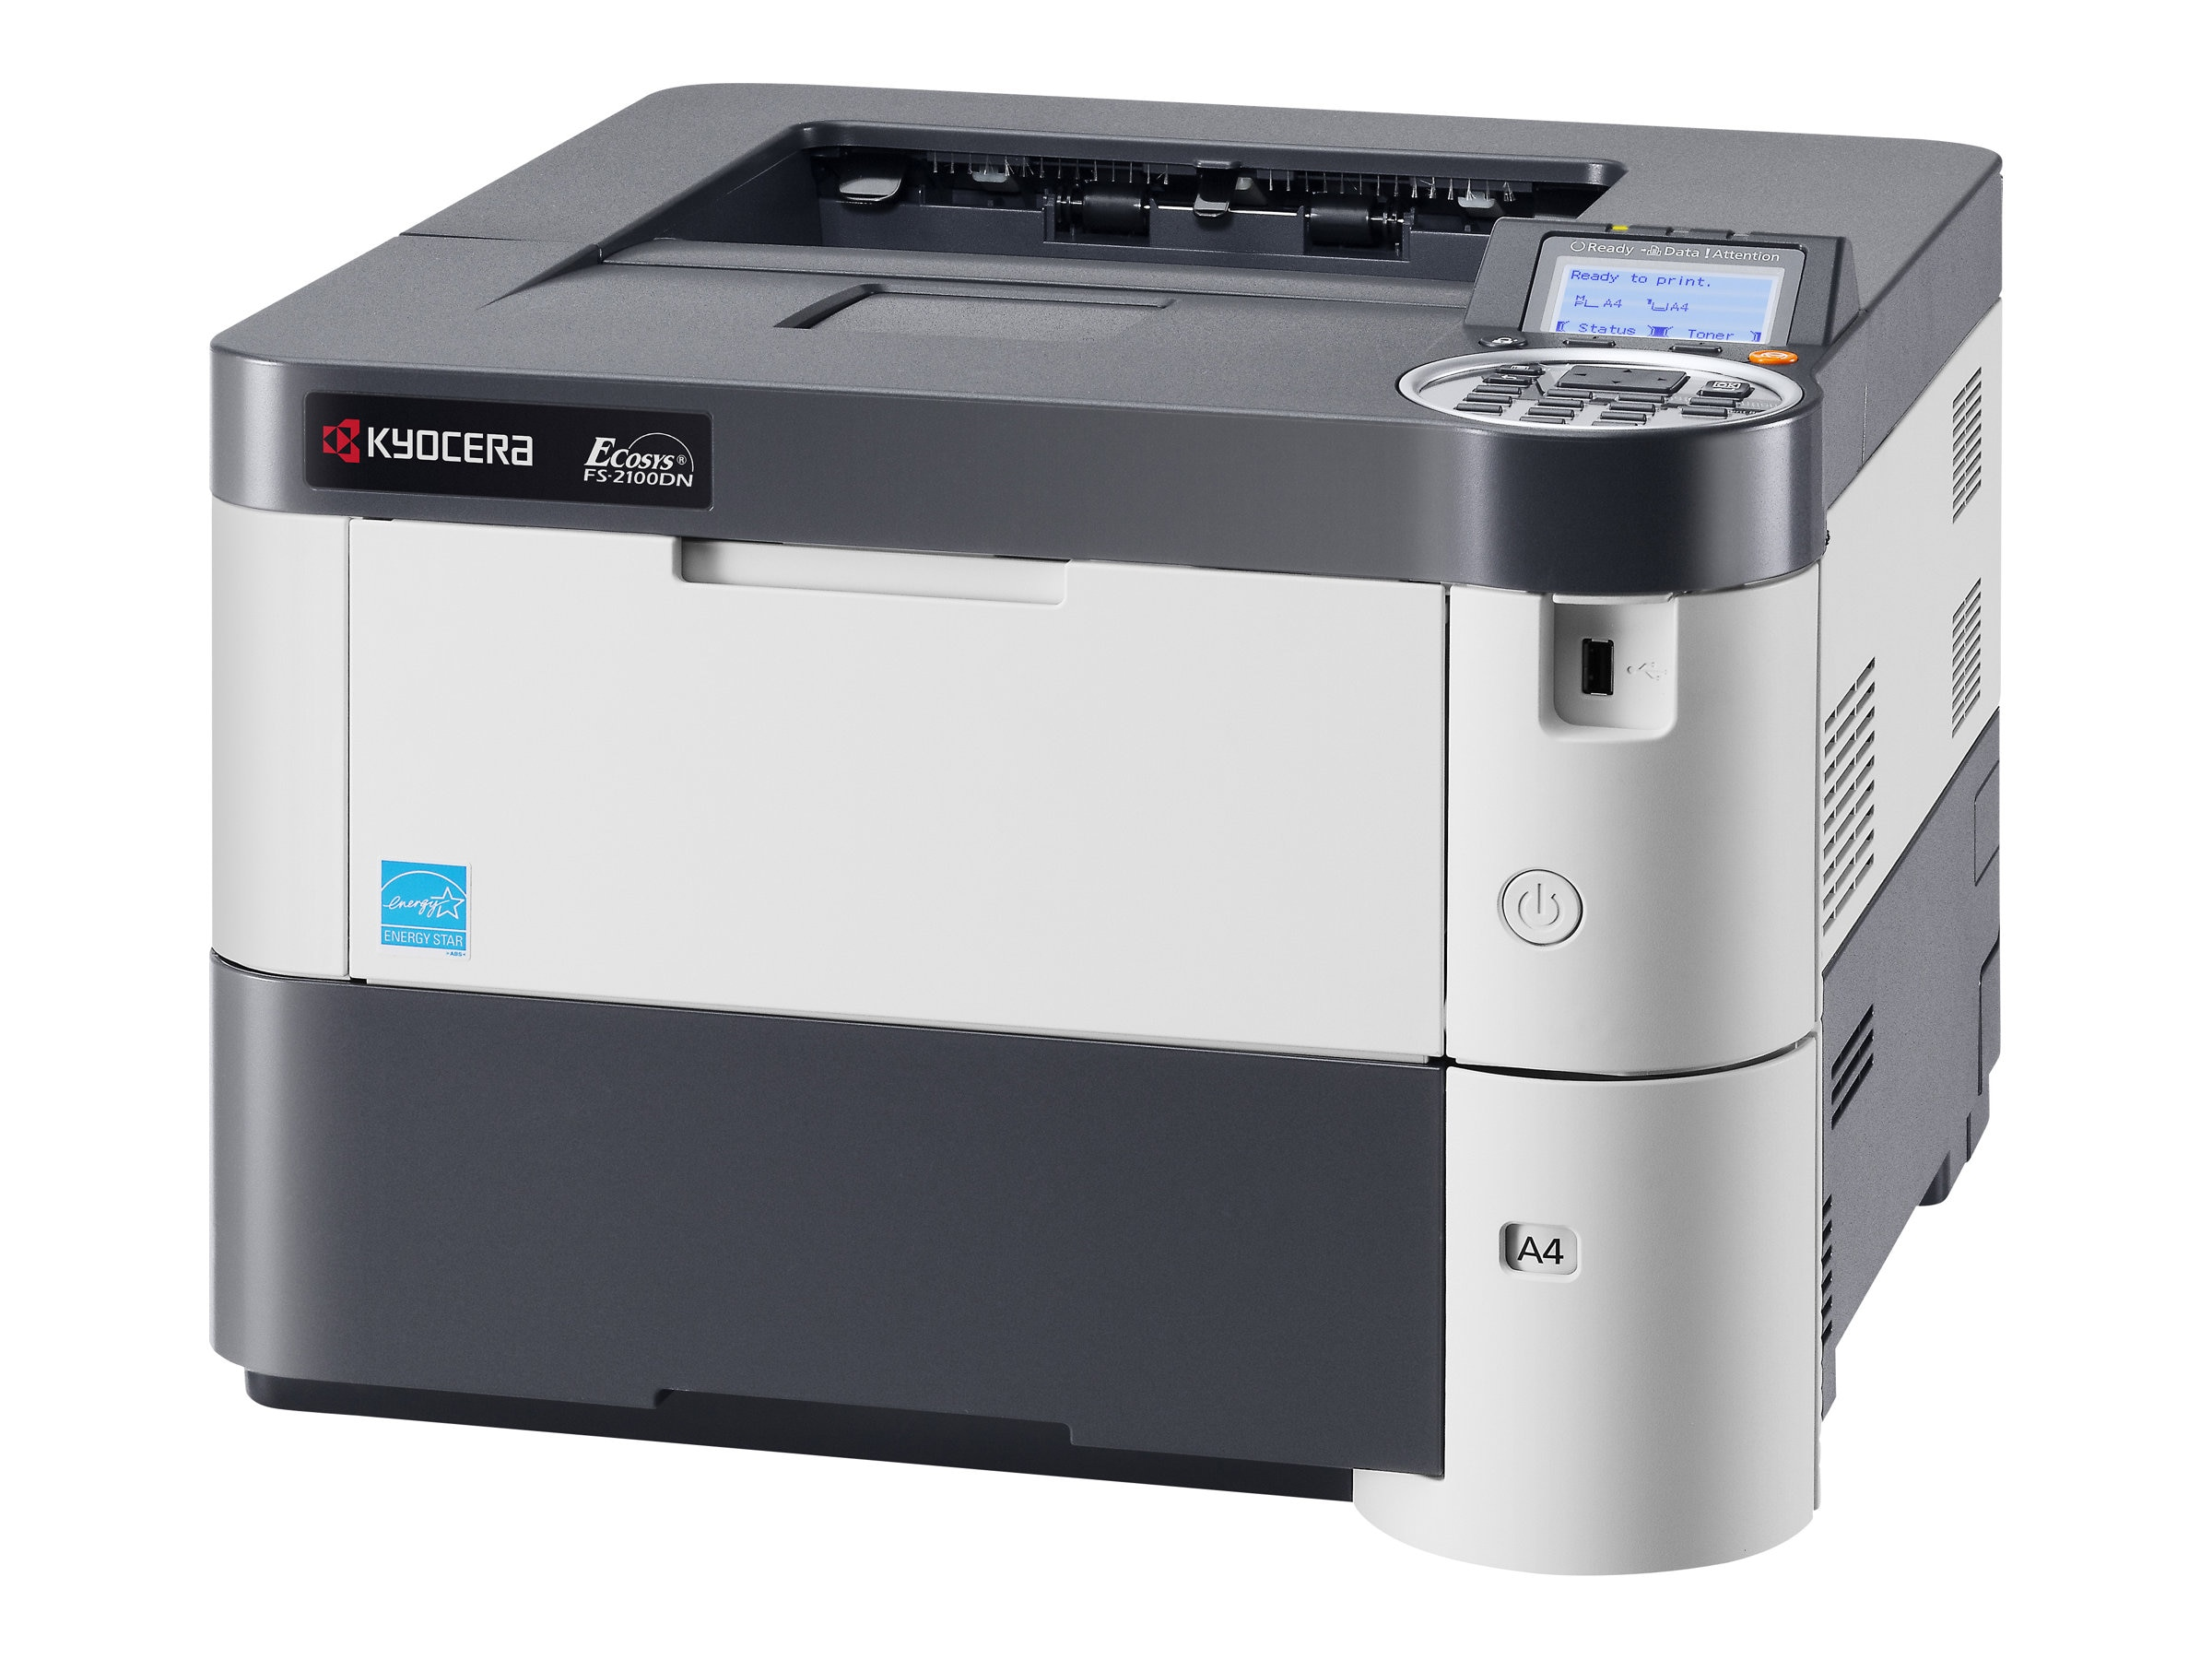 Kyocera FS-2100DN Network Printer, FS-2100DN, 15471930, Printers - Laser & LED (monochrome)